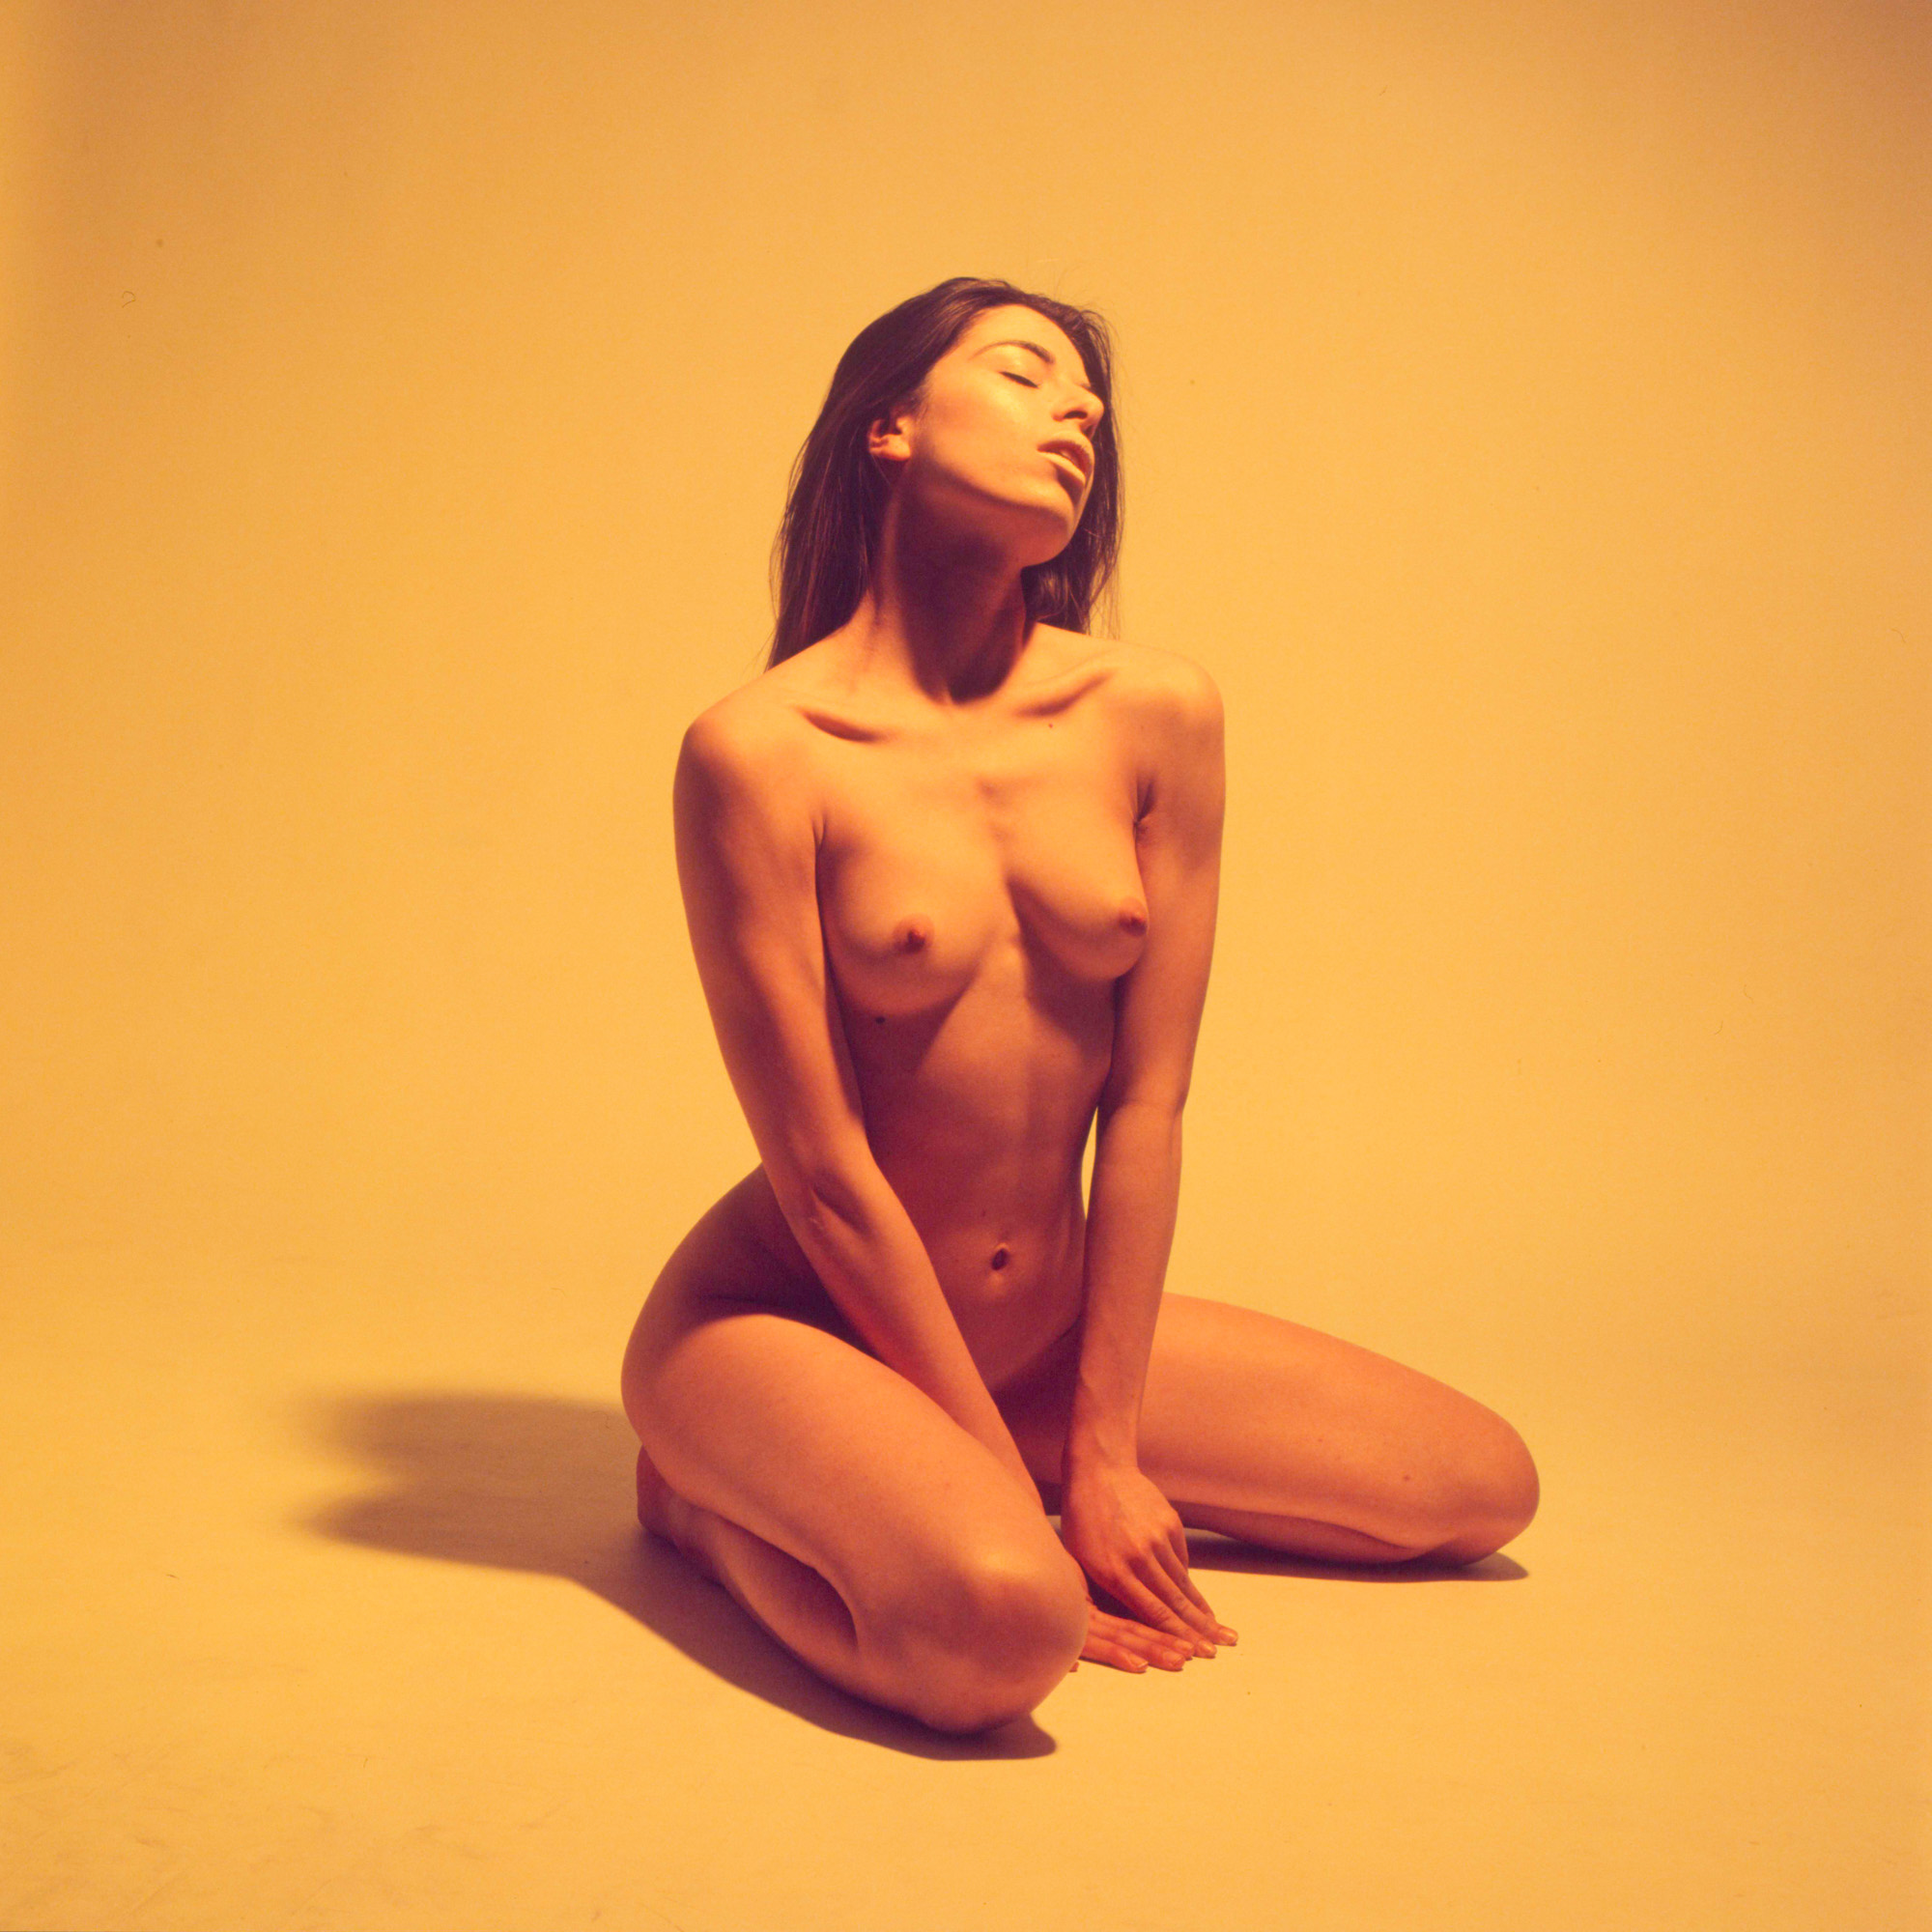 Analog Art & Nudes 7